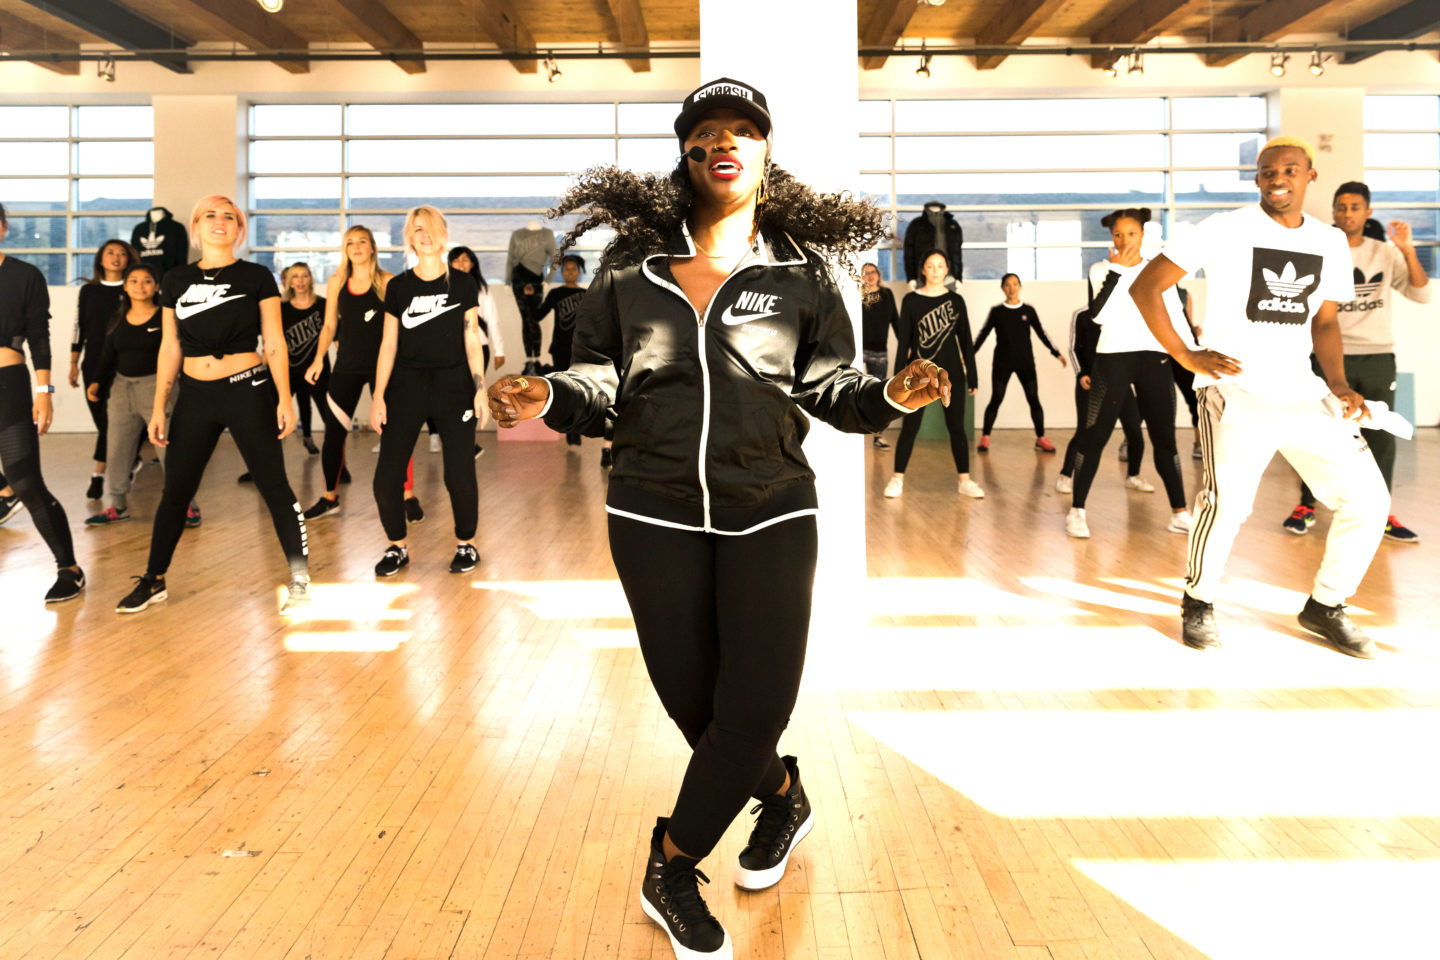 Choreographer Tanisha Scott takes the floor at Sport Chek's latest event promoting their Lifexstyle Collection!